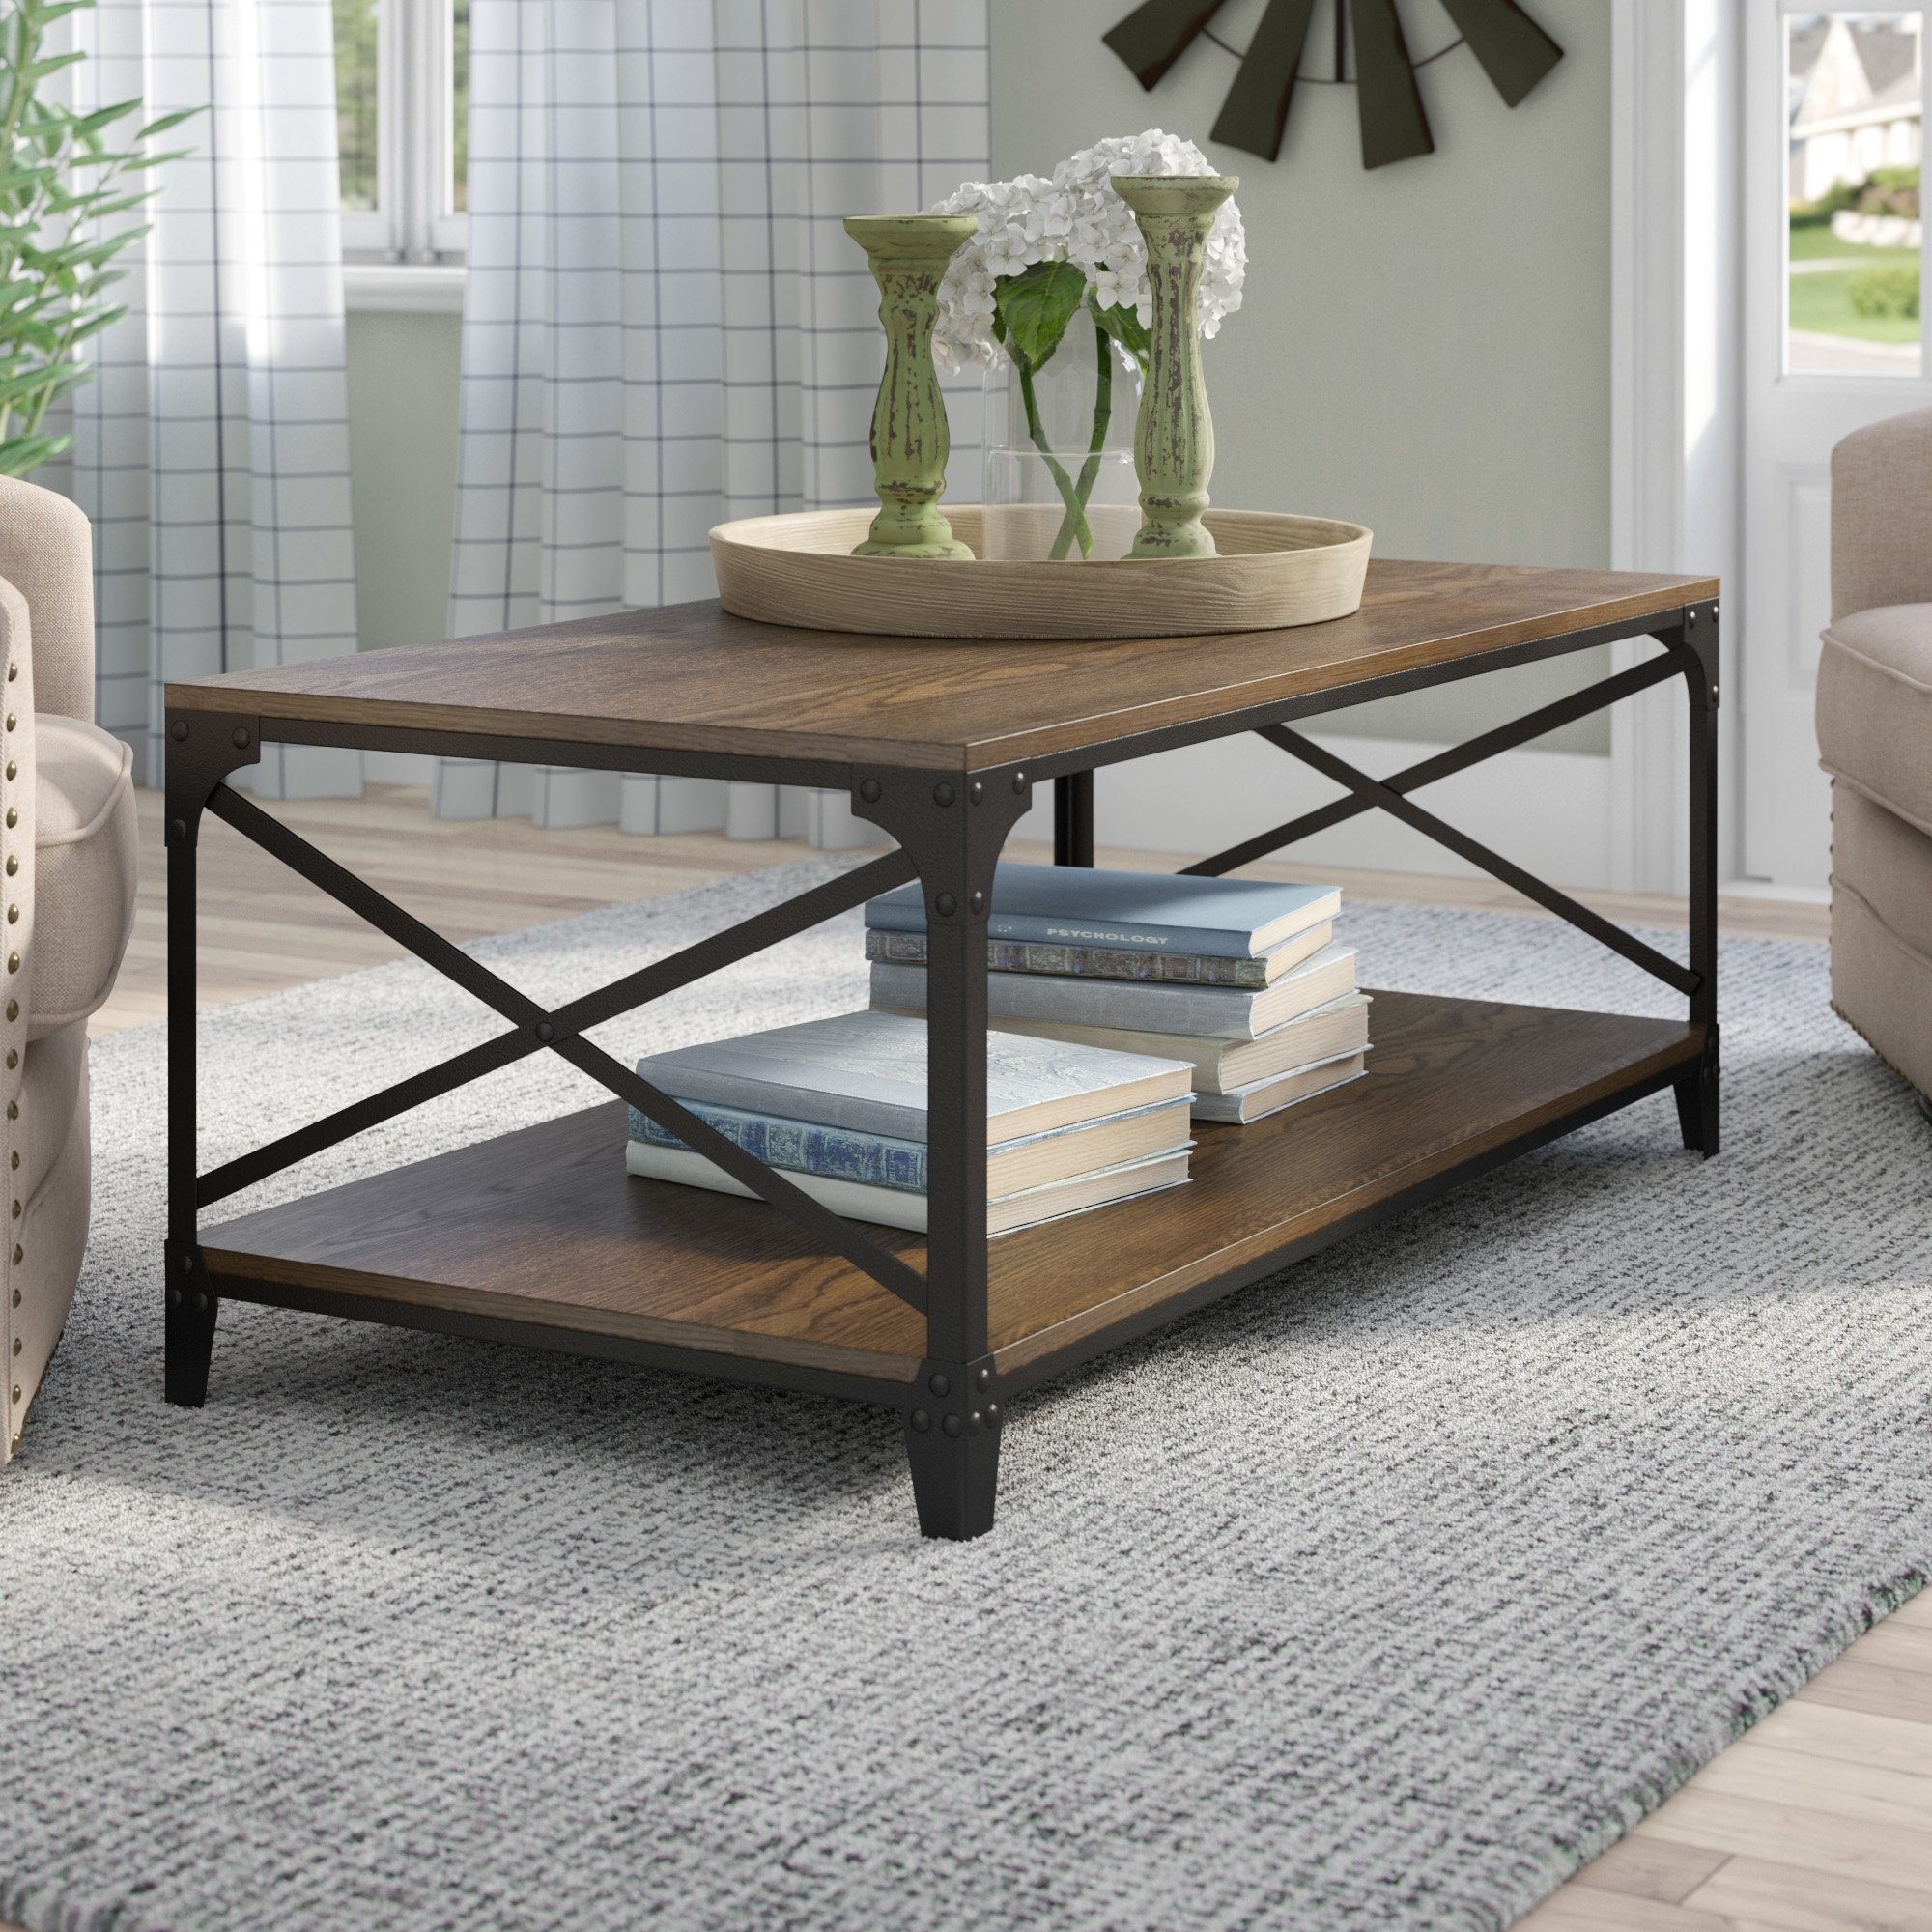 Gracie Oaks Elesa Coffee Table & Reviews | Wayfair Inside Large Scale Chinese Farmhouse Coffee Tables (View 8 of 30)